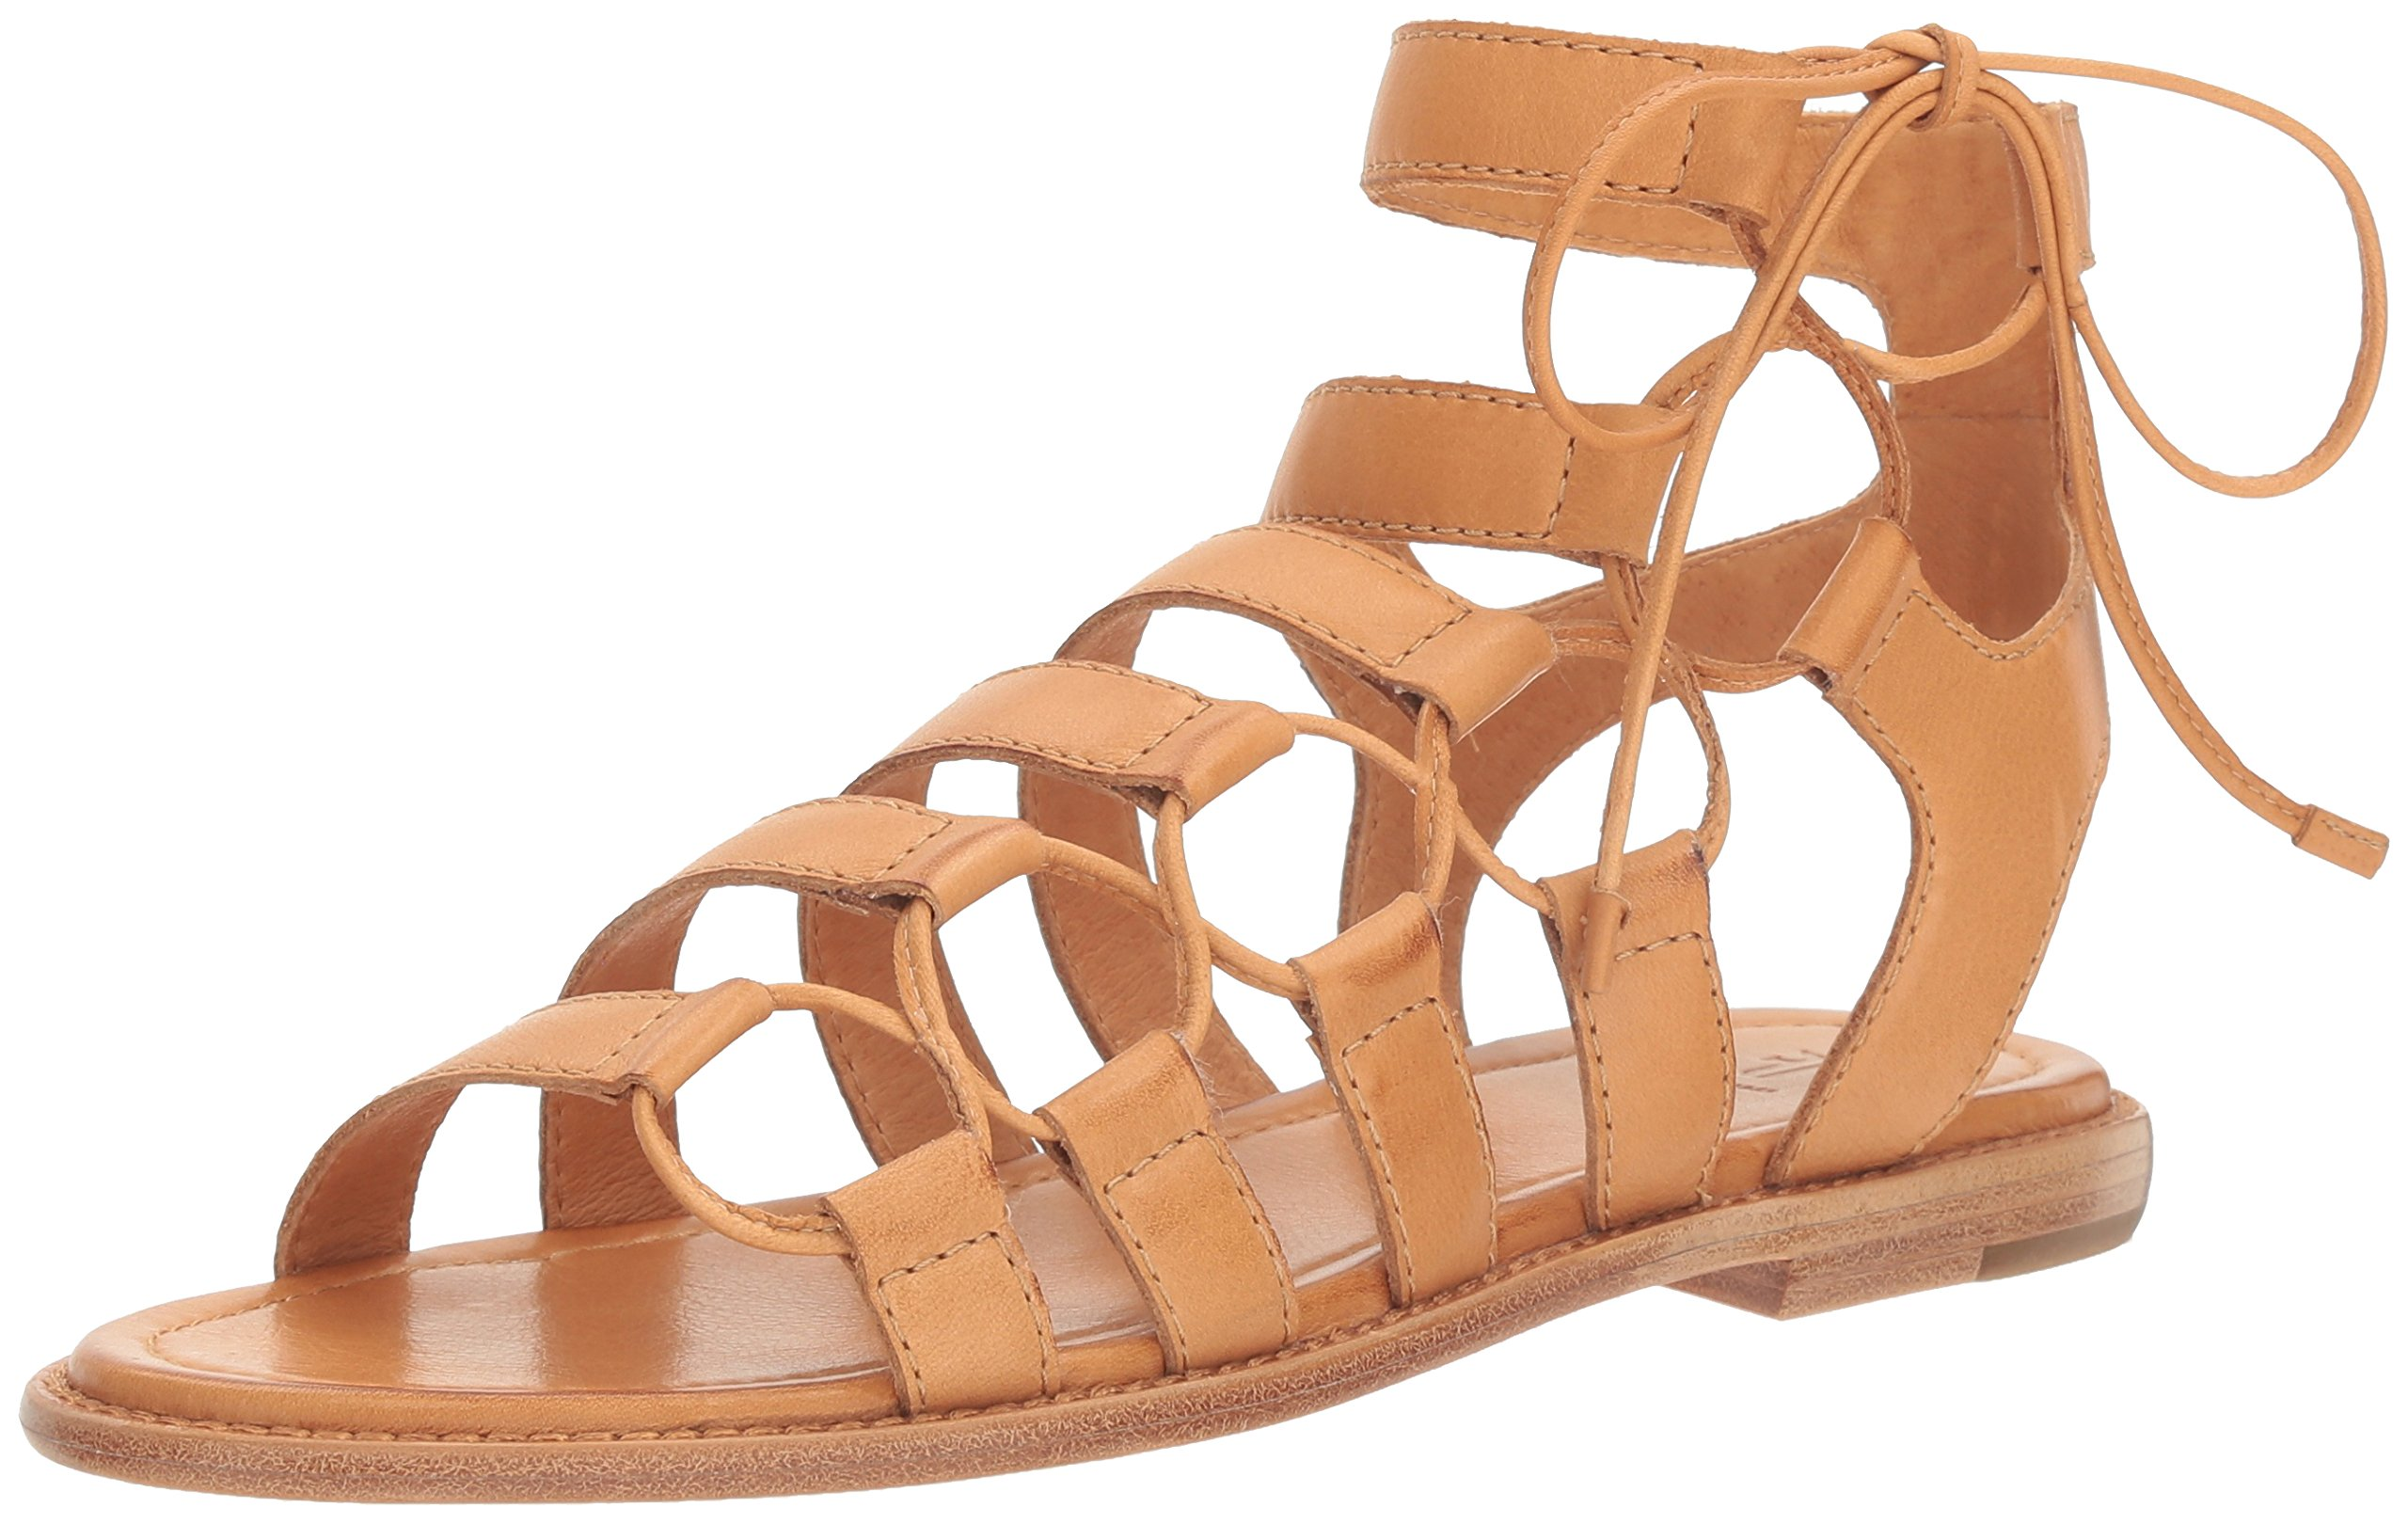 FRYE Women's Blair Side Ghillie Gladiator Sandal, Tan, 7.5 M US